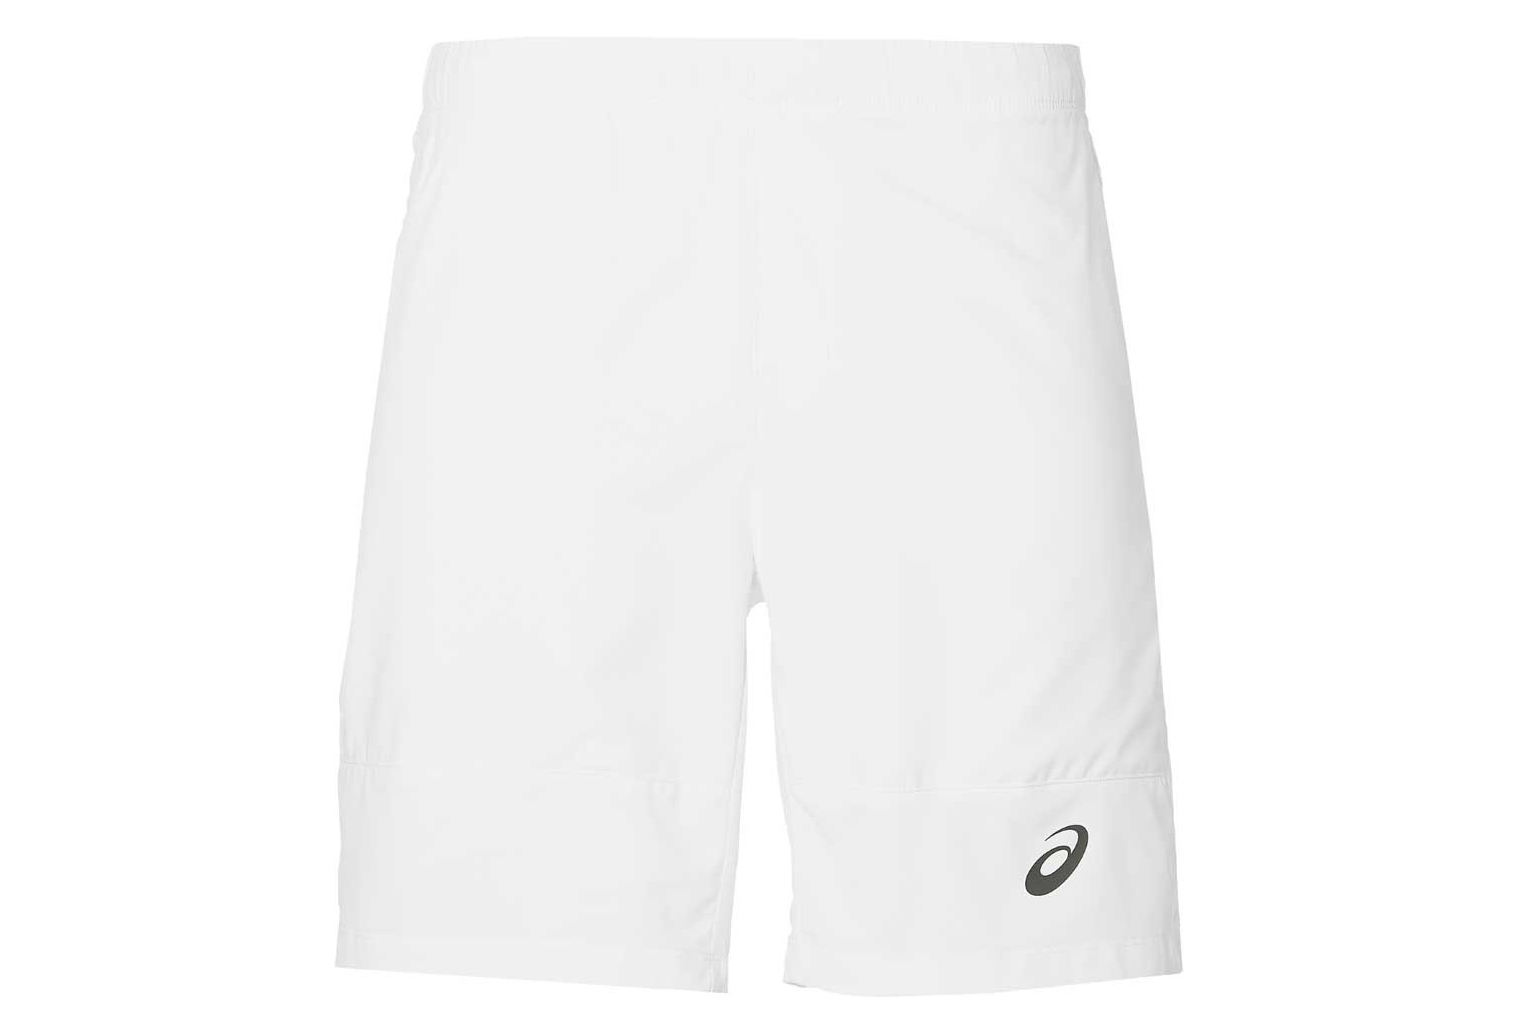 official site quite nice lower price with M Club Homme Short Tennis Blanc Asics